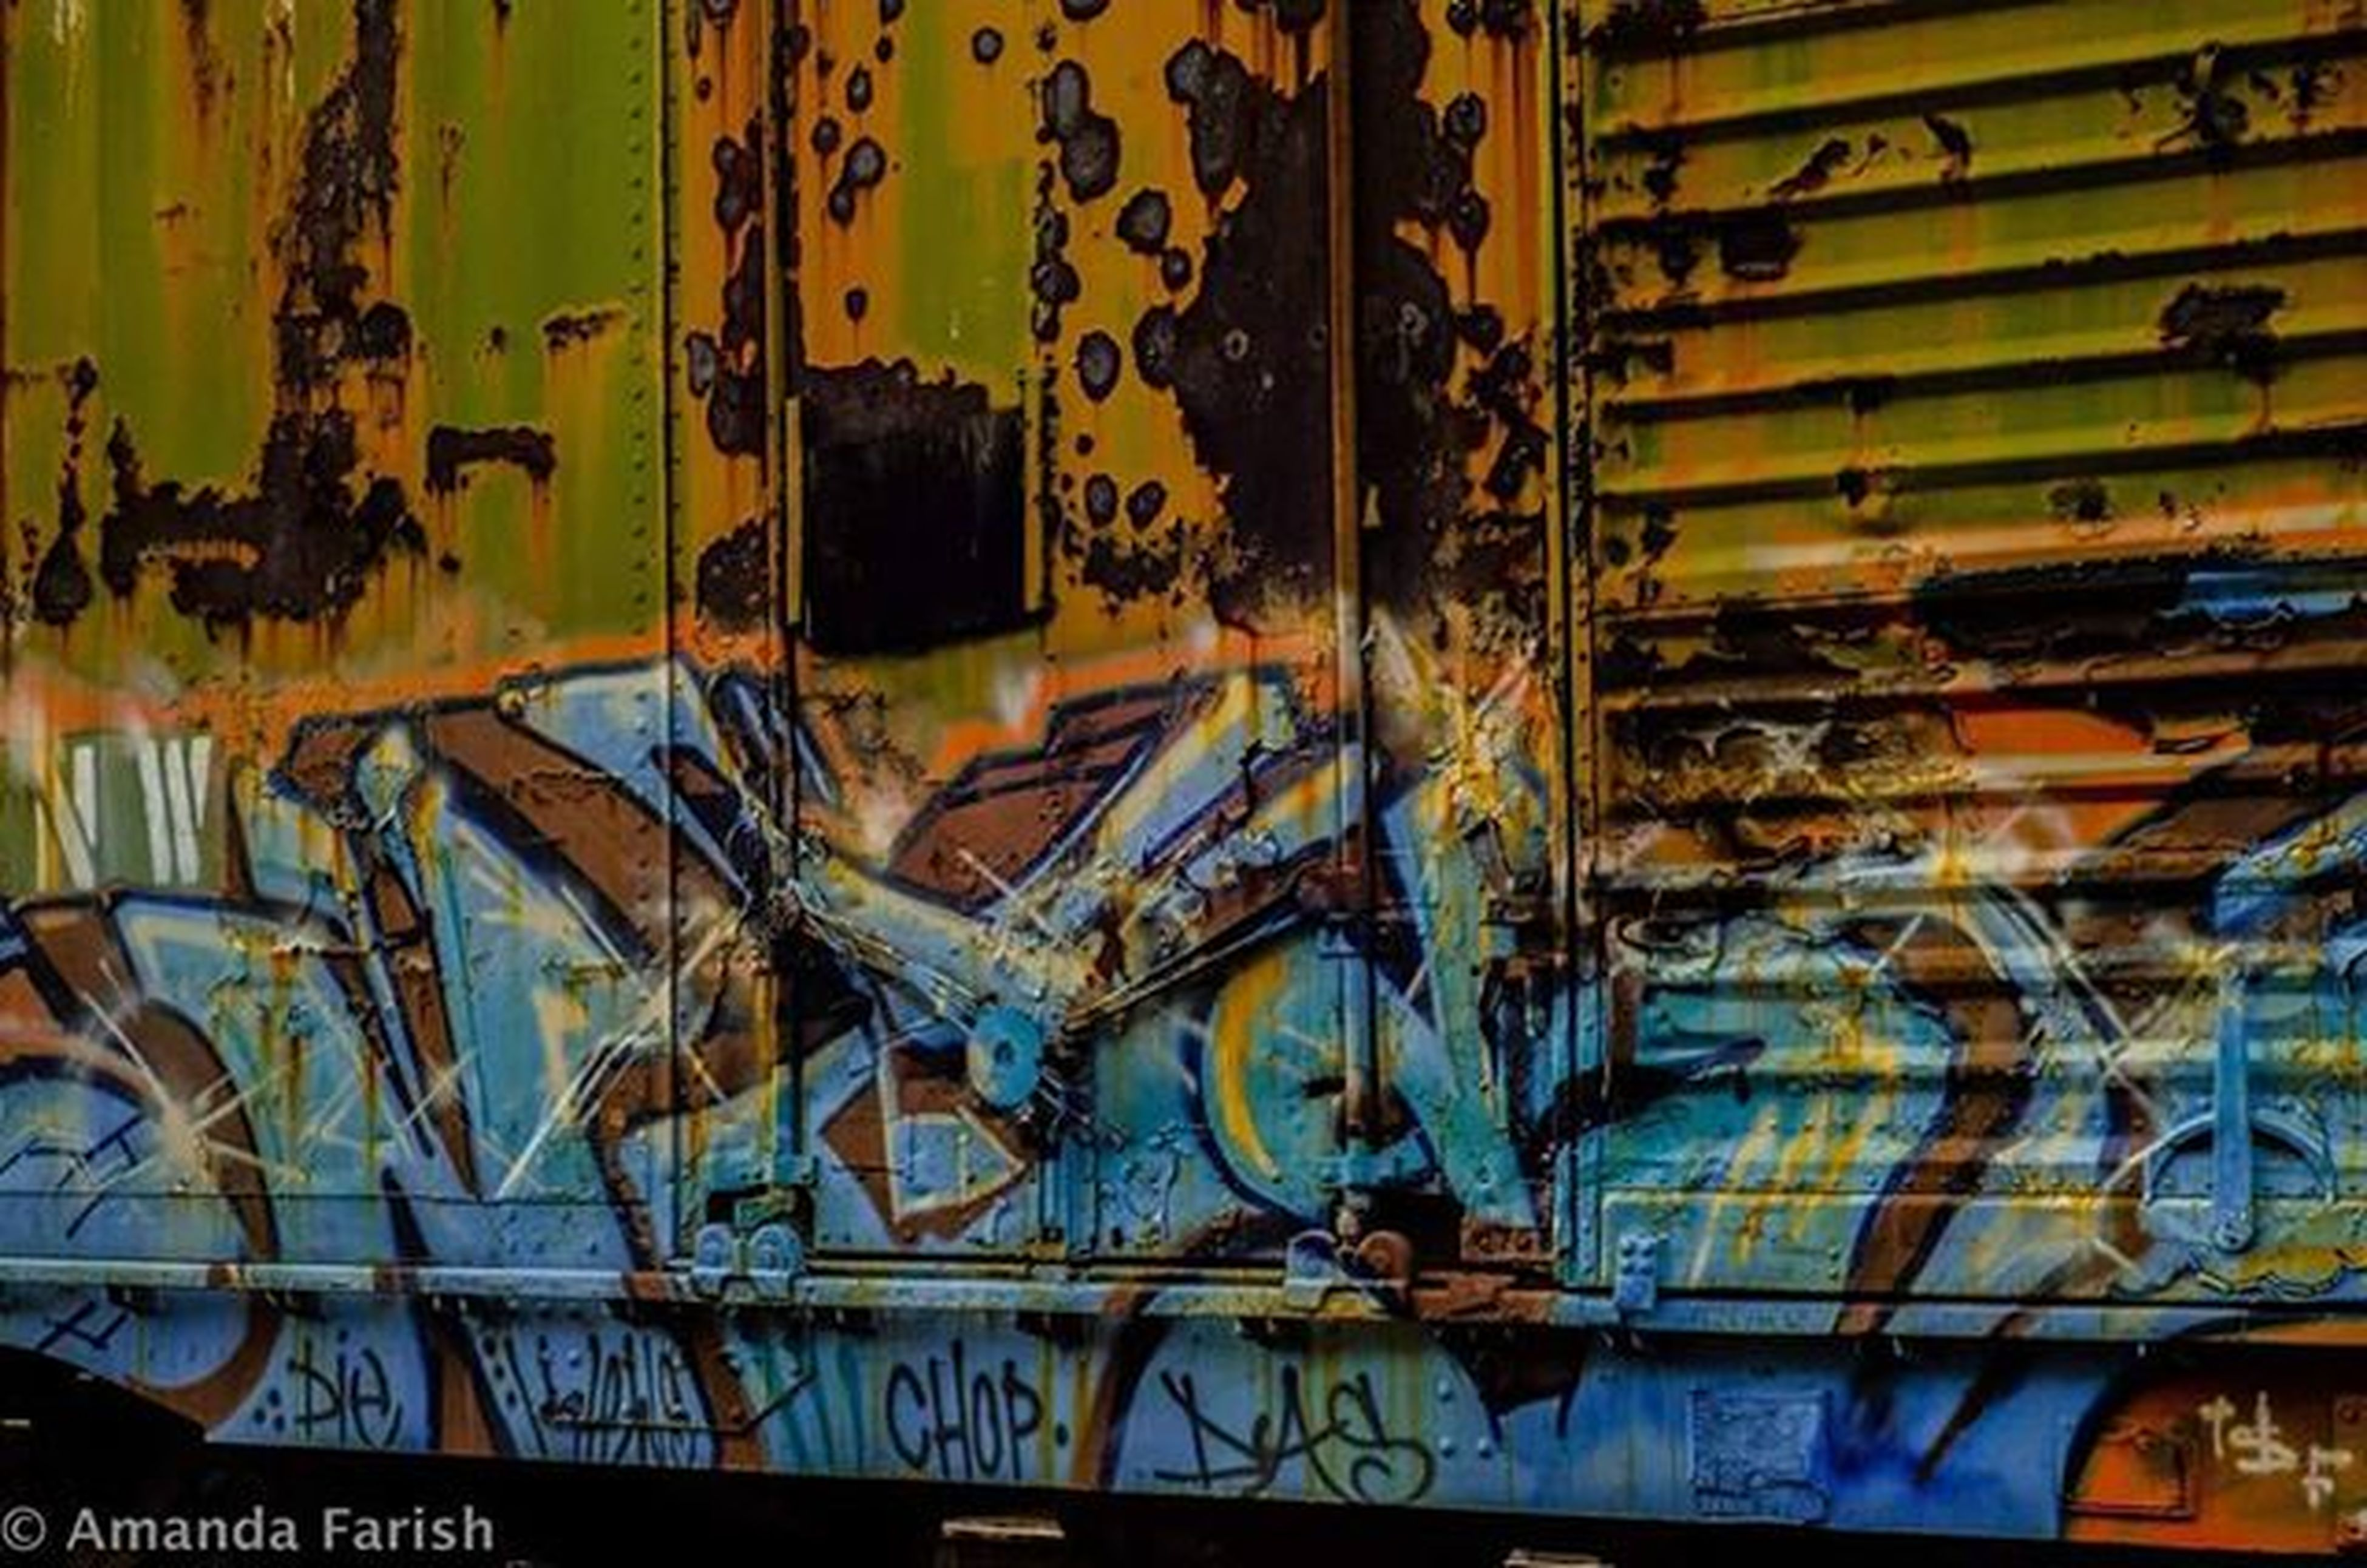 indoors, graffiti, art, art and craft, wall - building feature, creativity, metal, no people, ceiling, interior, full frame, backgrounds, in a row, abandoned, built structure, close-up, messy, glass - material, illuminated, pattern